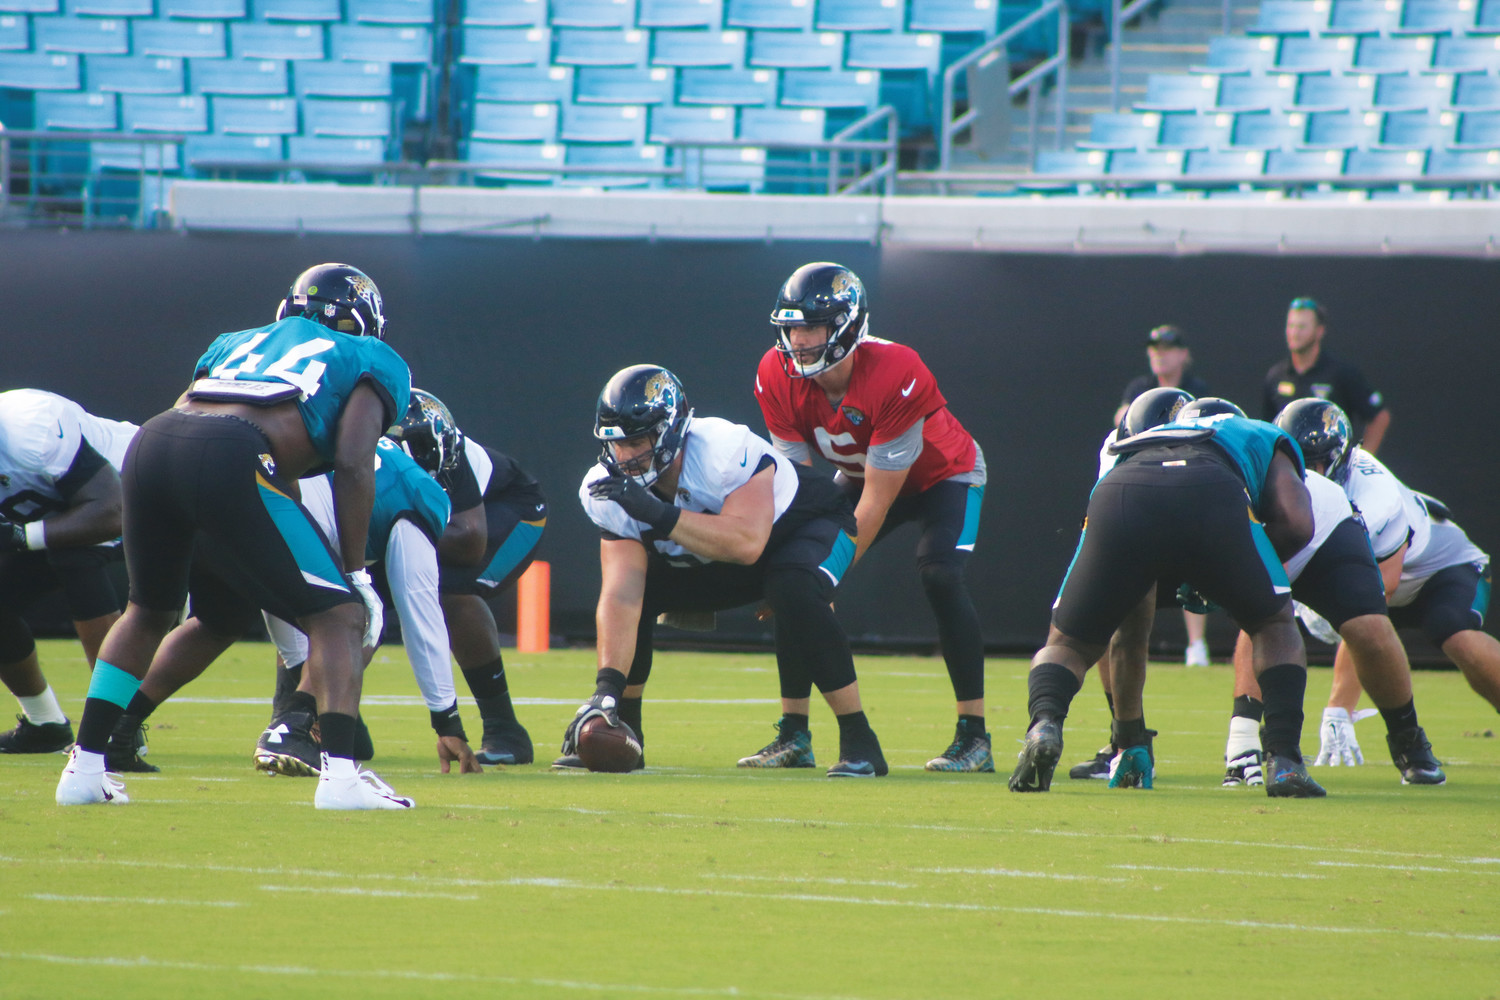 Jaguars quarterback Blake Bortles prepares to snap the ball in the team's scrimmage on Family Night Aug. 3.